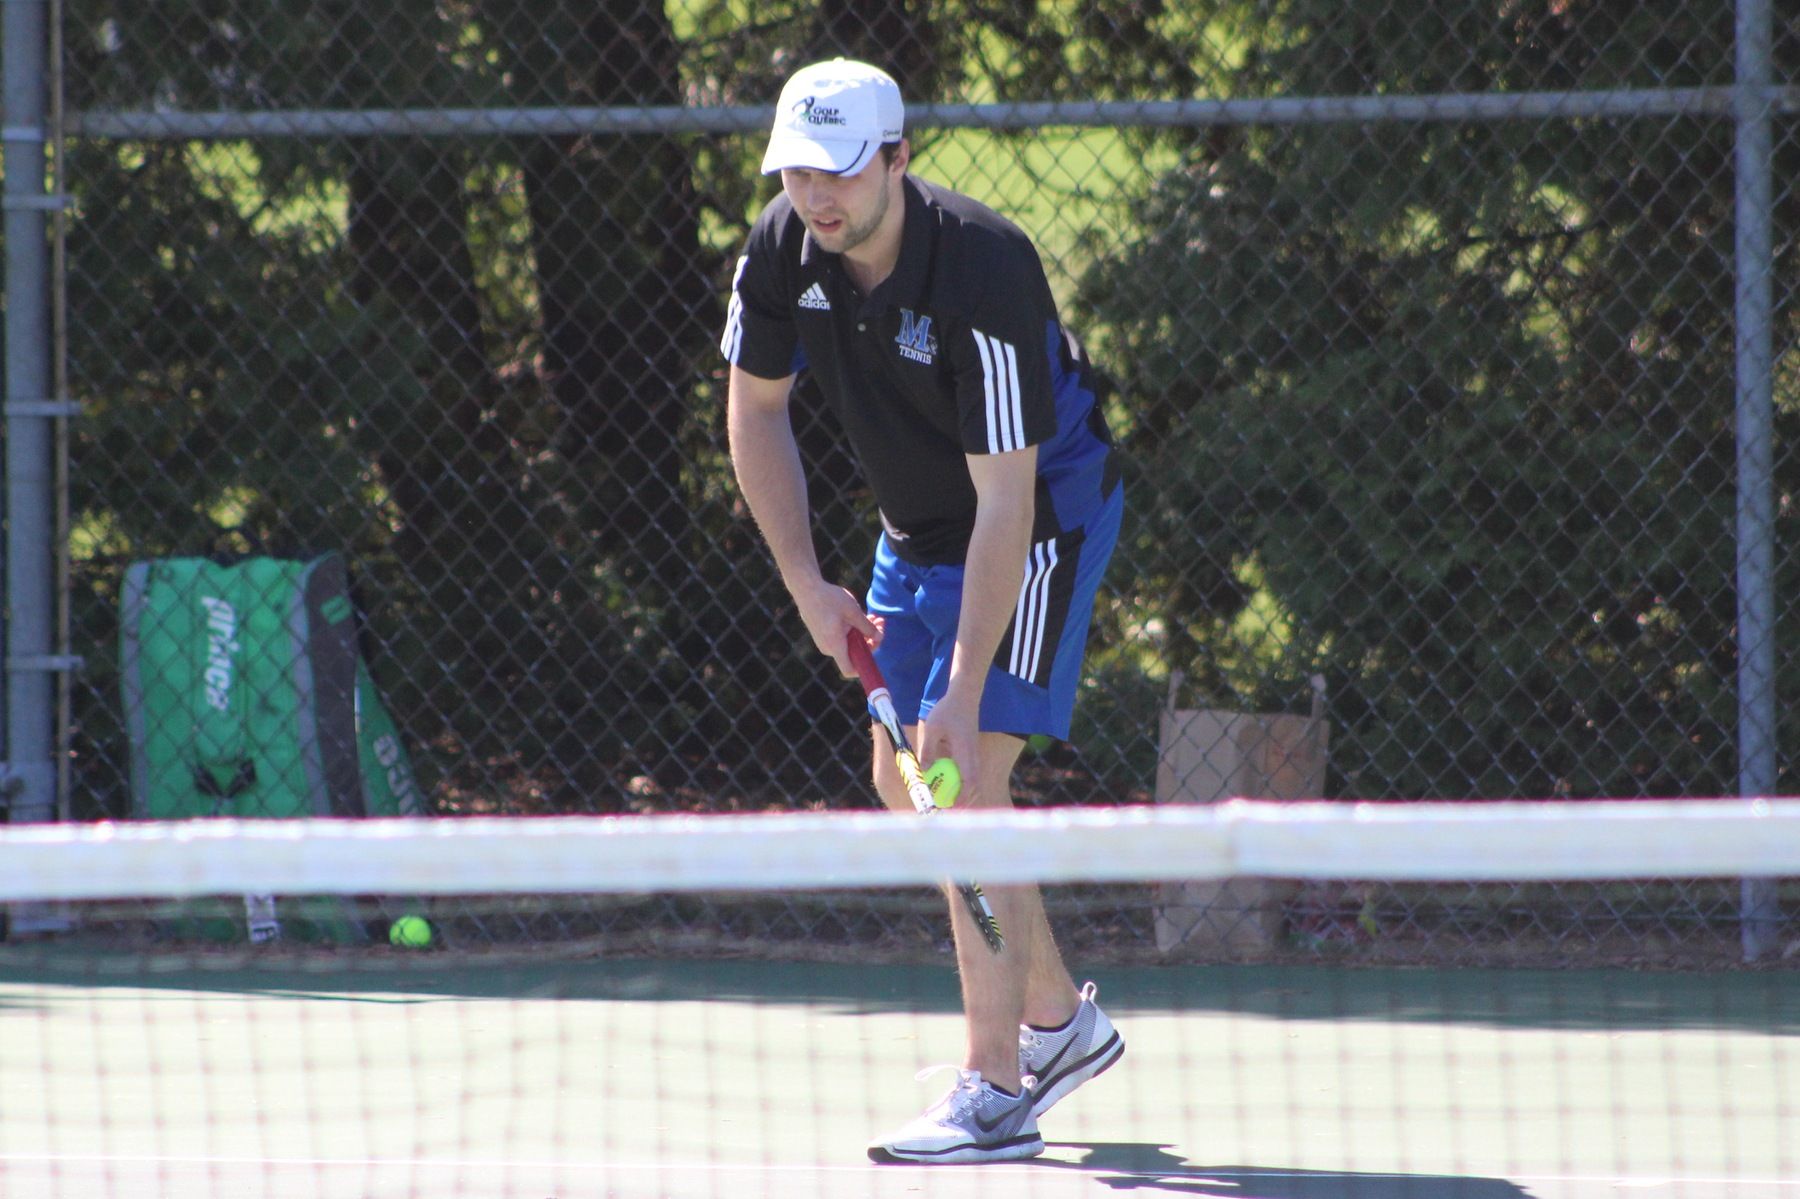 Lawson MacDonald gets ready to serve.